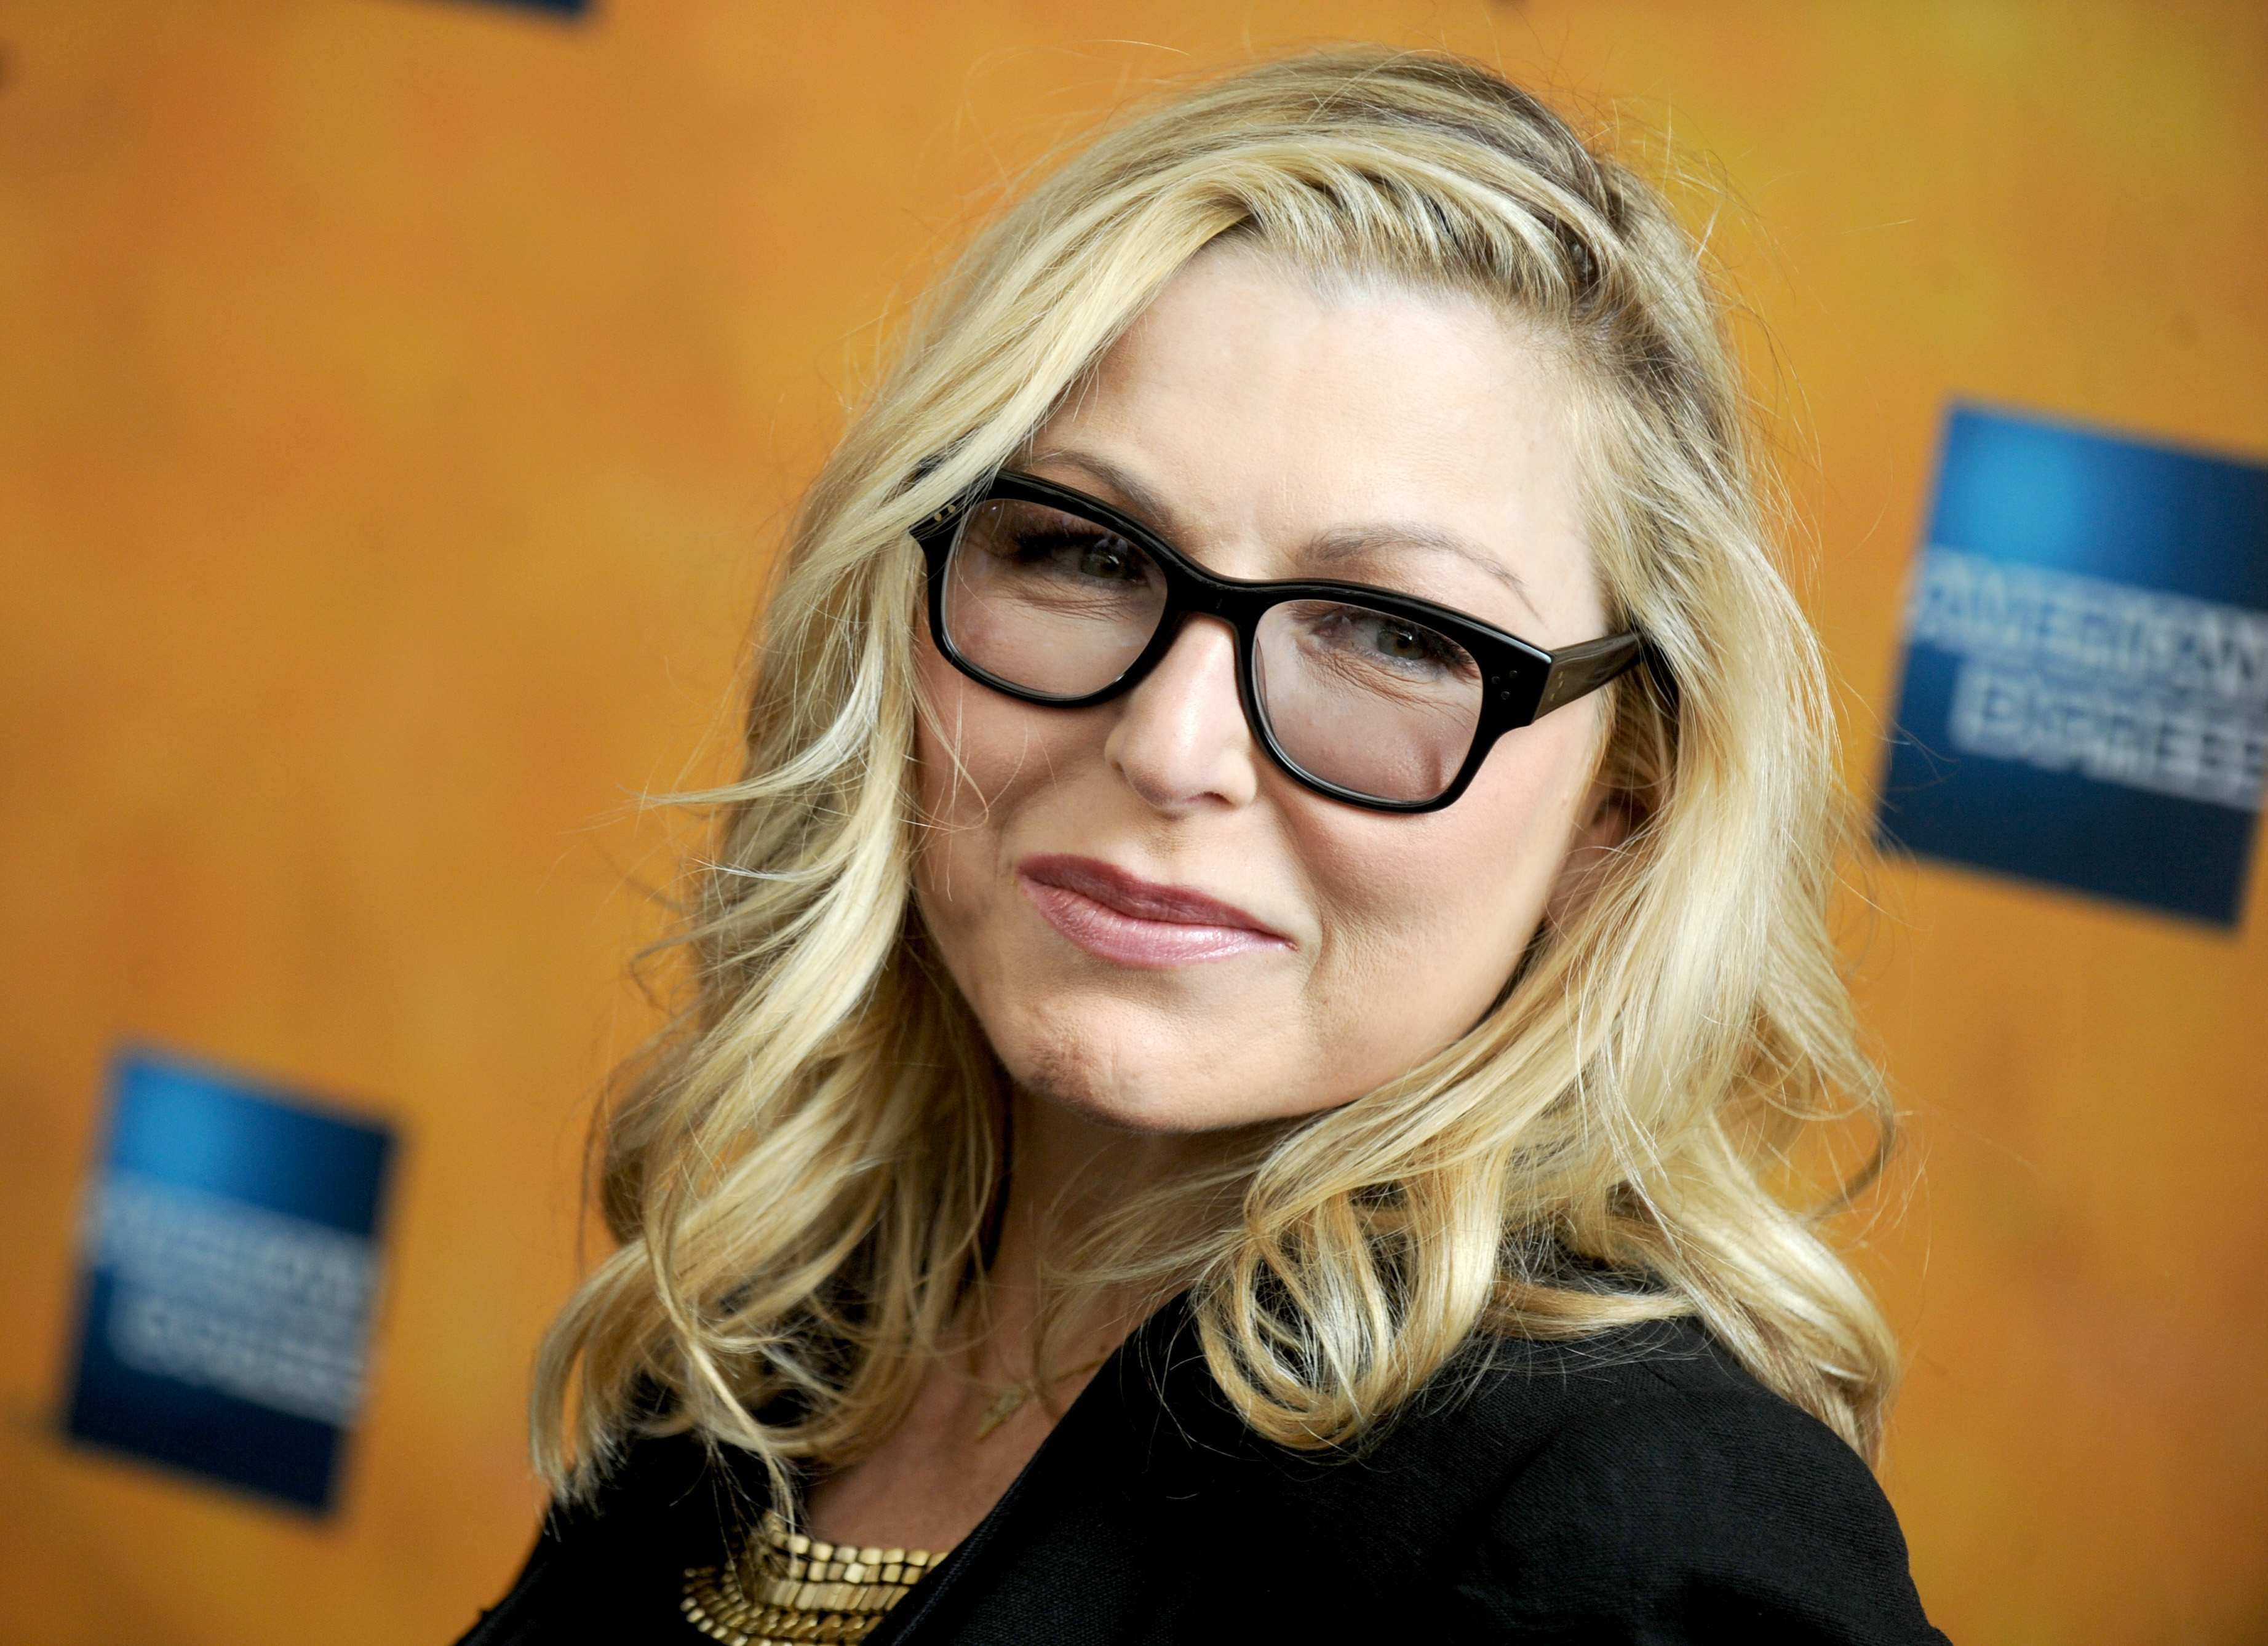 Tatum Oneal High Definition Wallpapers